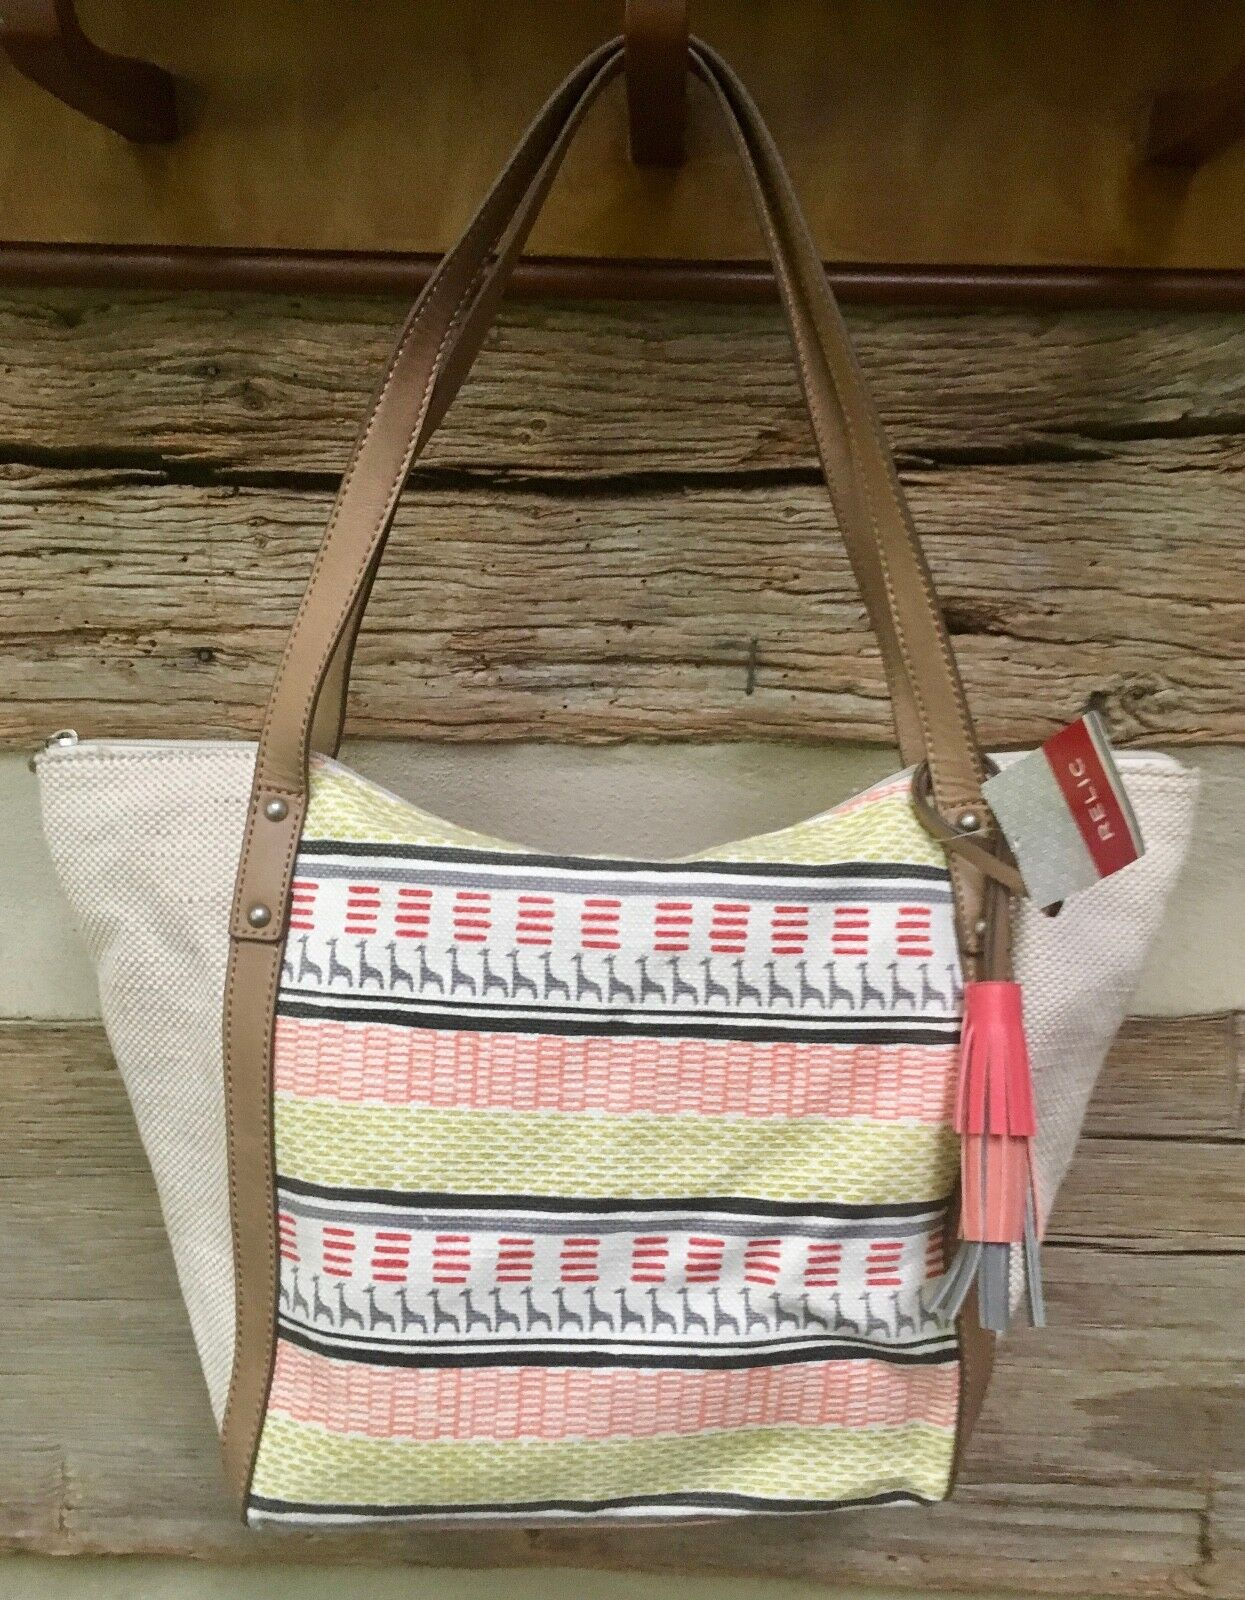 1a0a2396c8 Women s Relic Beige Tan Coral Pink Hand Bag Purse Ladies Tote ...